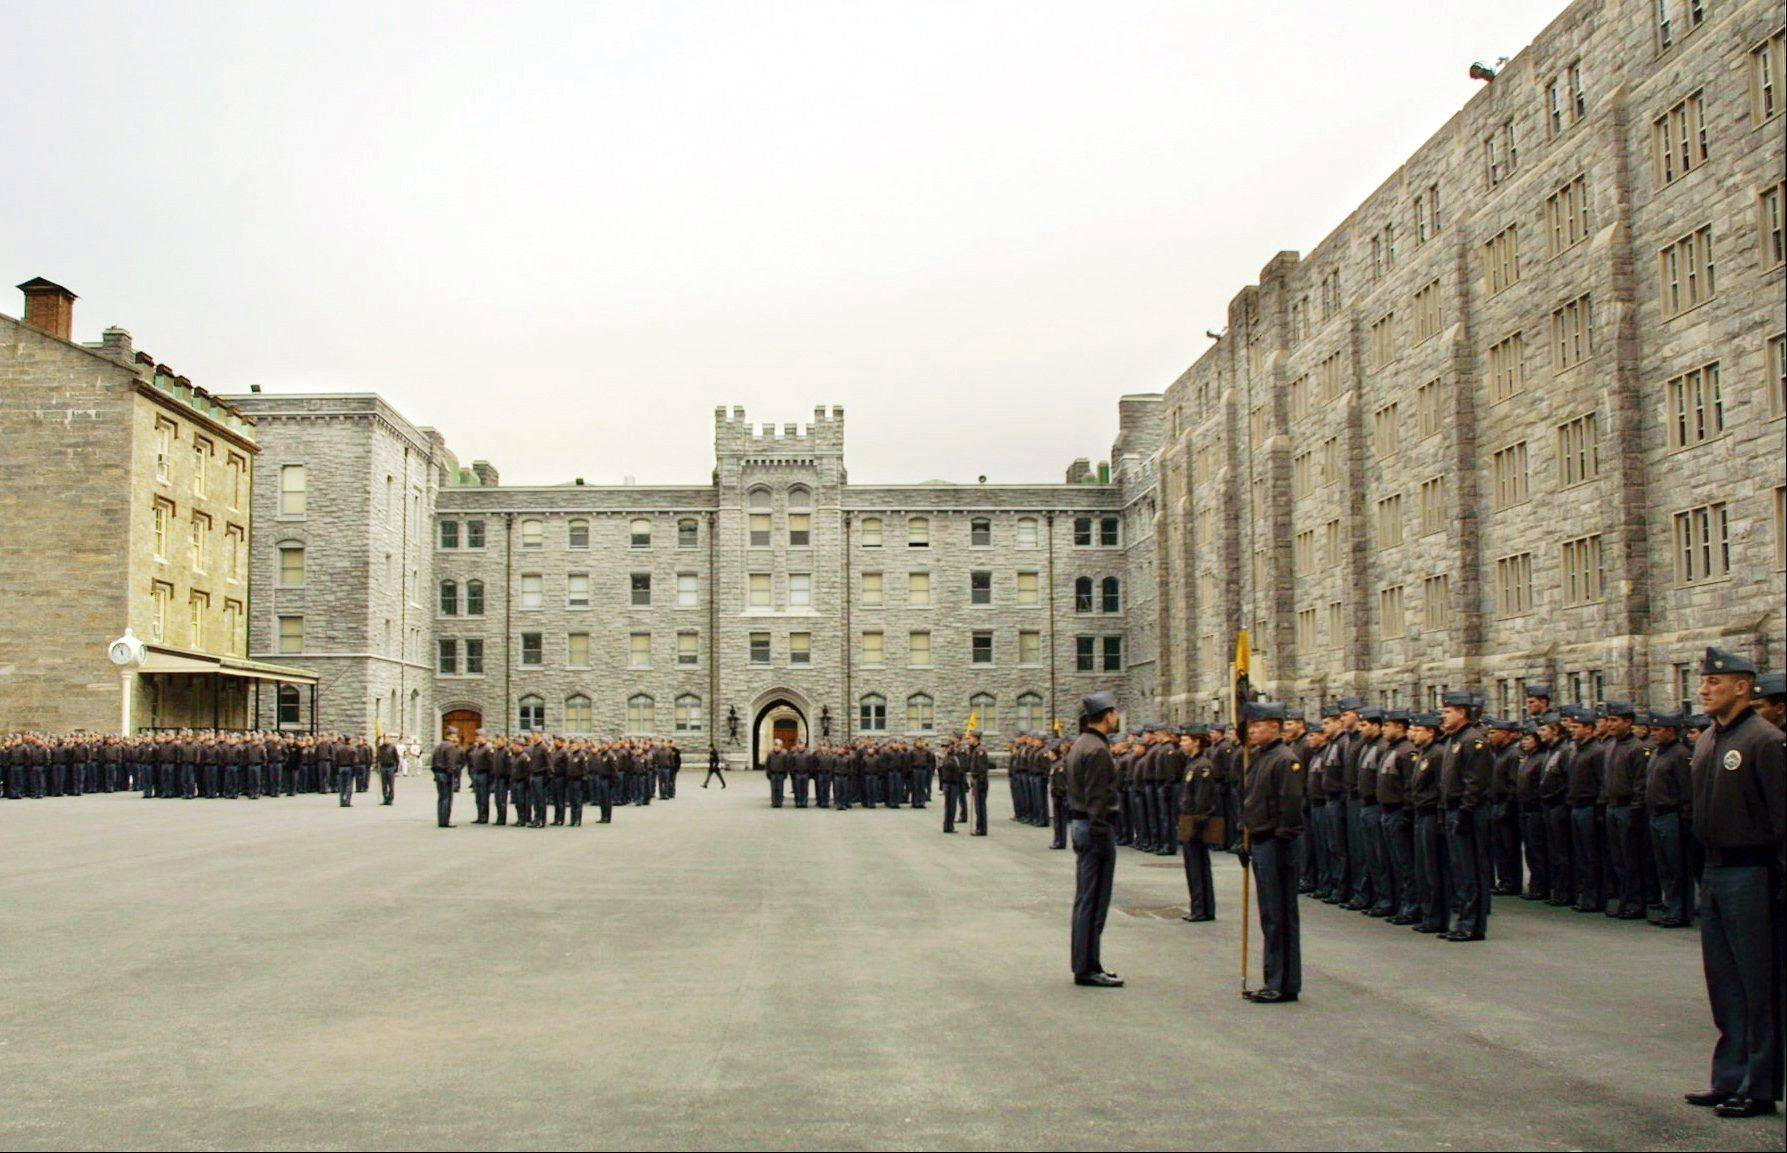 United States Military Academy cadets stand in formation at the United States Military Academy at West Point, N.Y. Blake Page, a cadet quitting West Point less than six months before graduation, says he could no longer be part of a culture that promotes prayers and religious activities and disrespects nonreligious cadets.